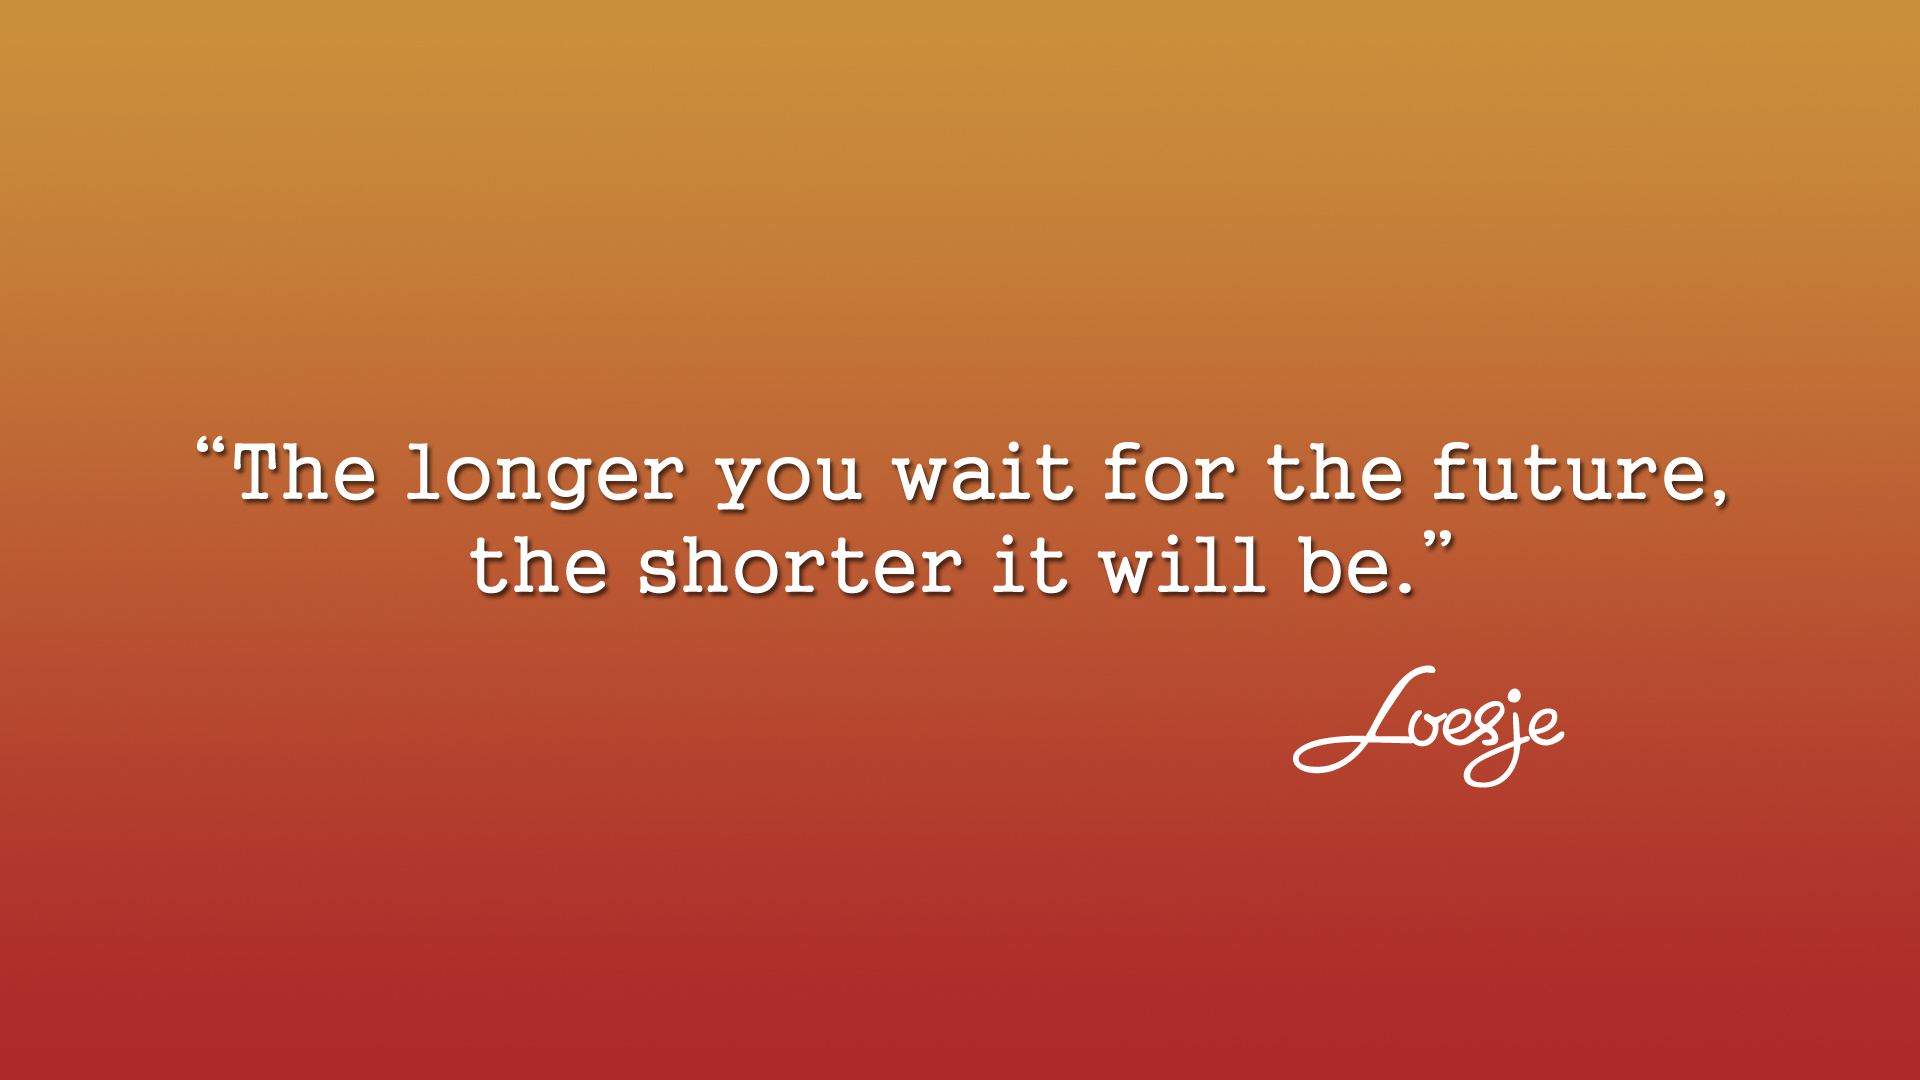 Quote Wallpaper - Loesje - The Longer You Wait by eablevins